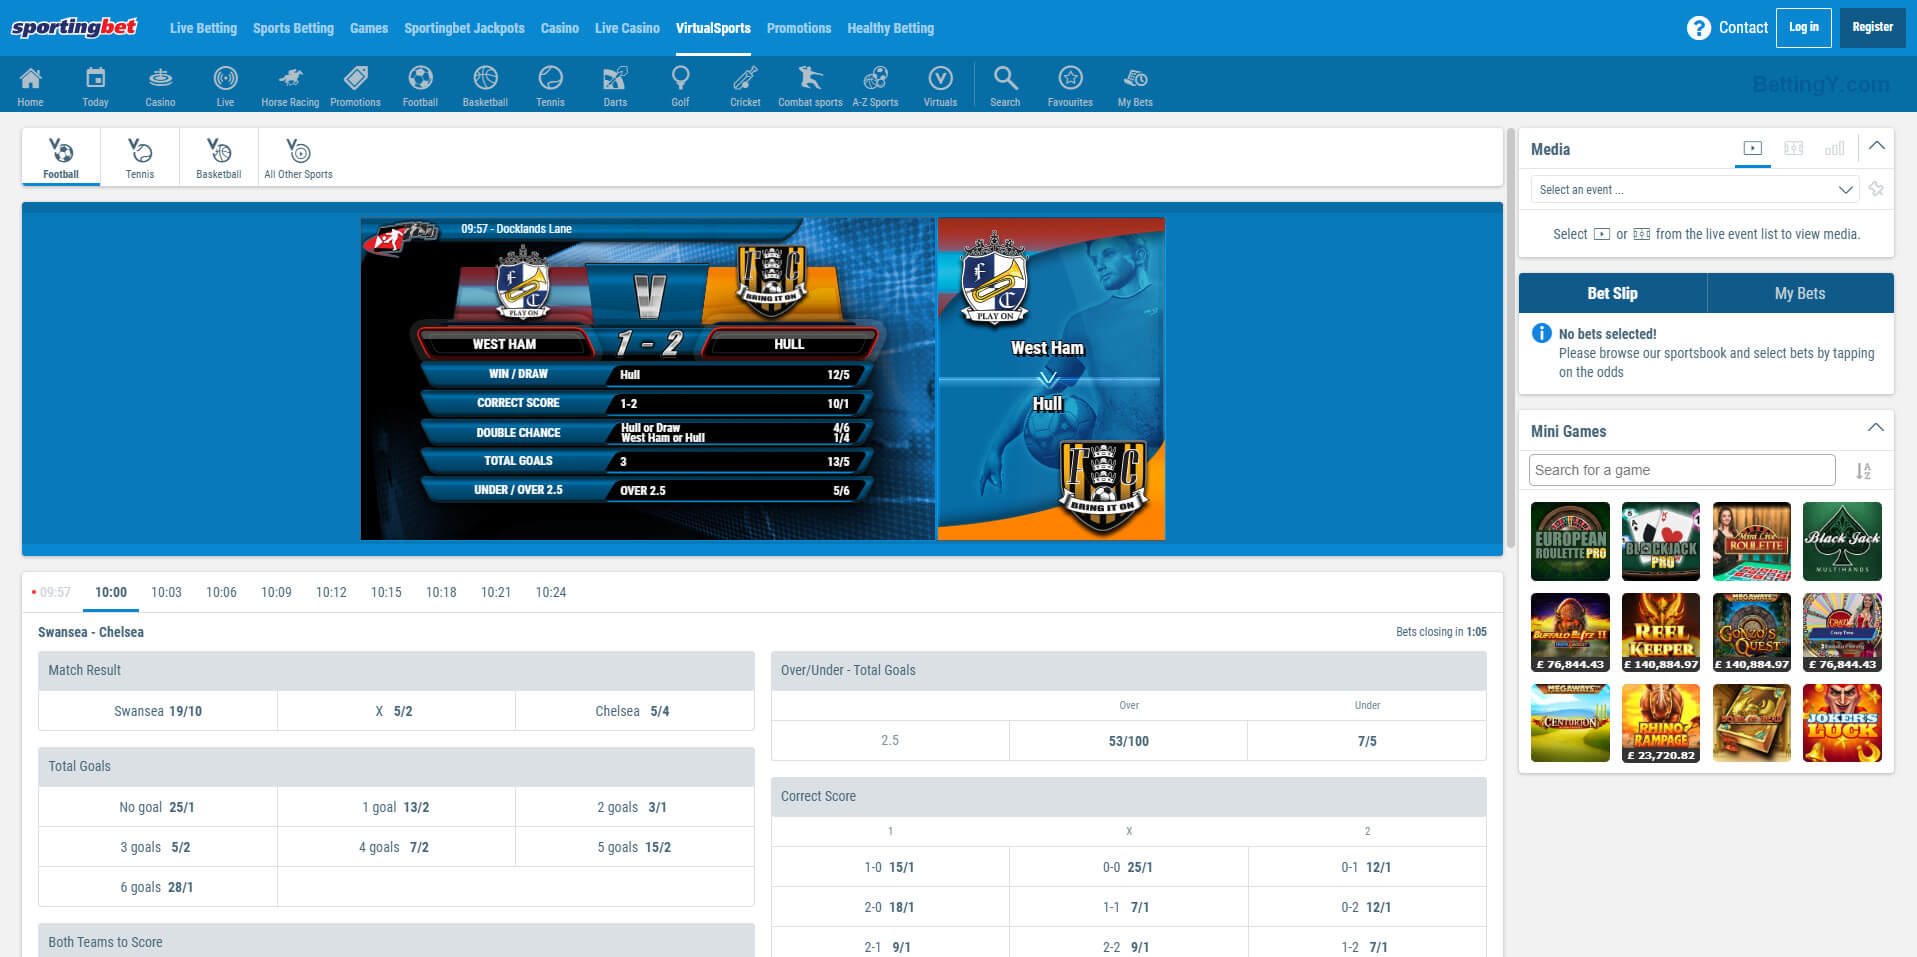 About Virtual Sports at Sportingbet